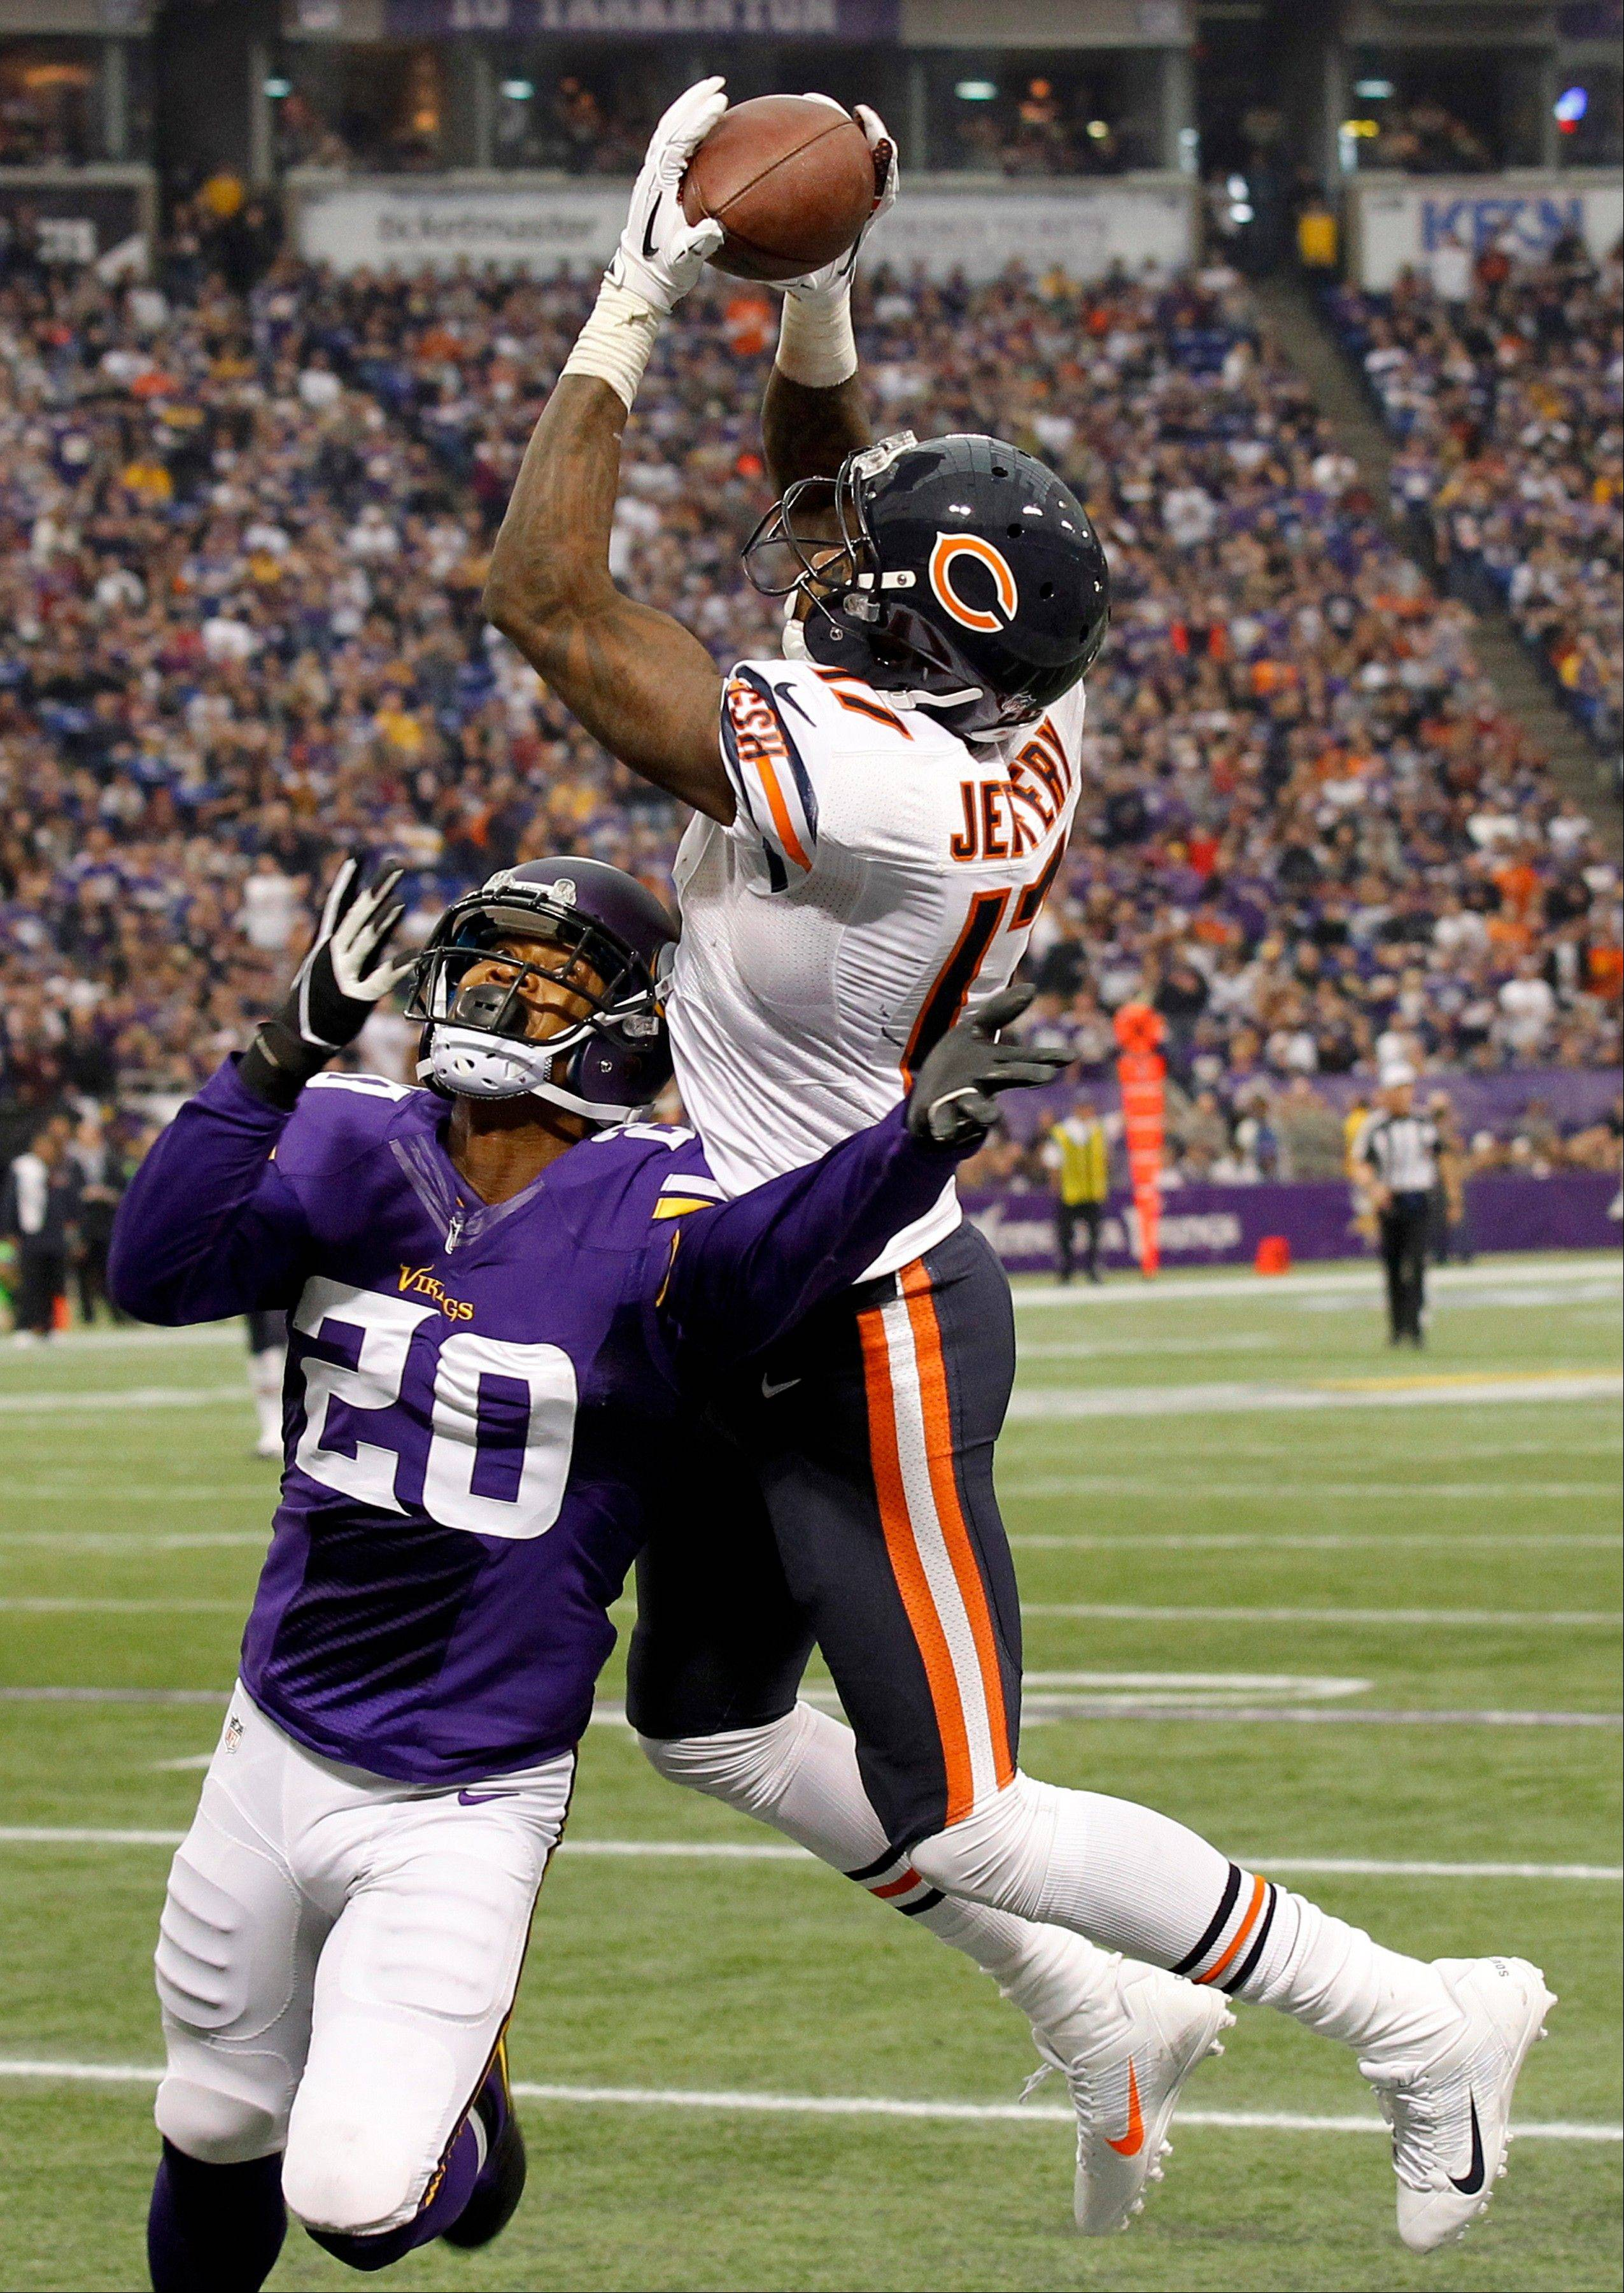 Chicago Bears wide receiver Alshon Jeffery catches a 46-yard touchdown pass over Minnesota Vikings cornerback Chris Cook (20) during the second half.